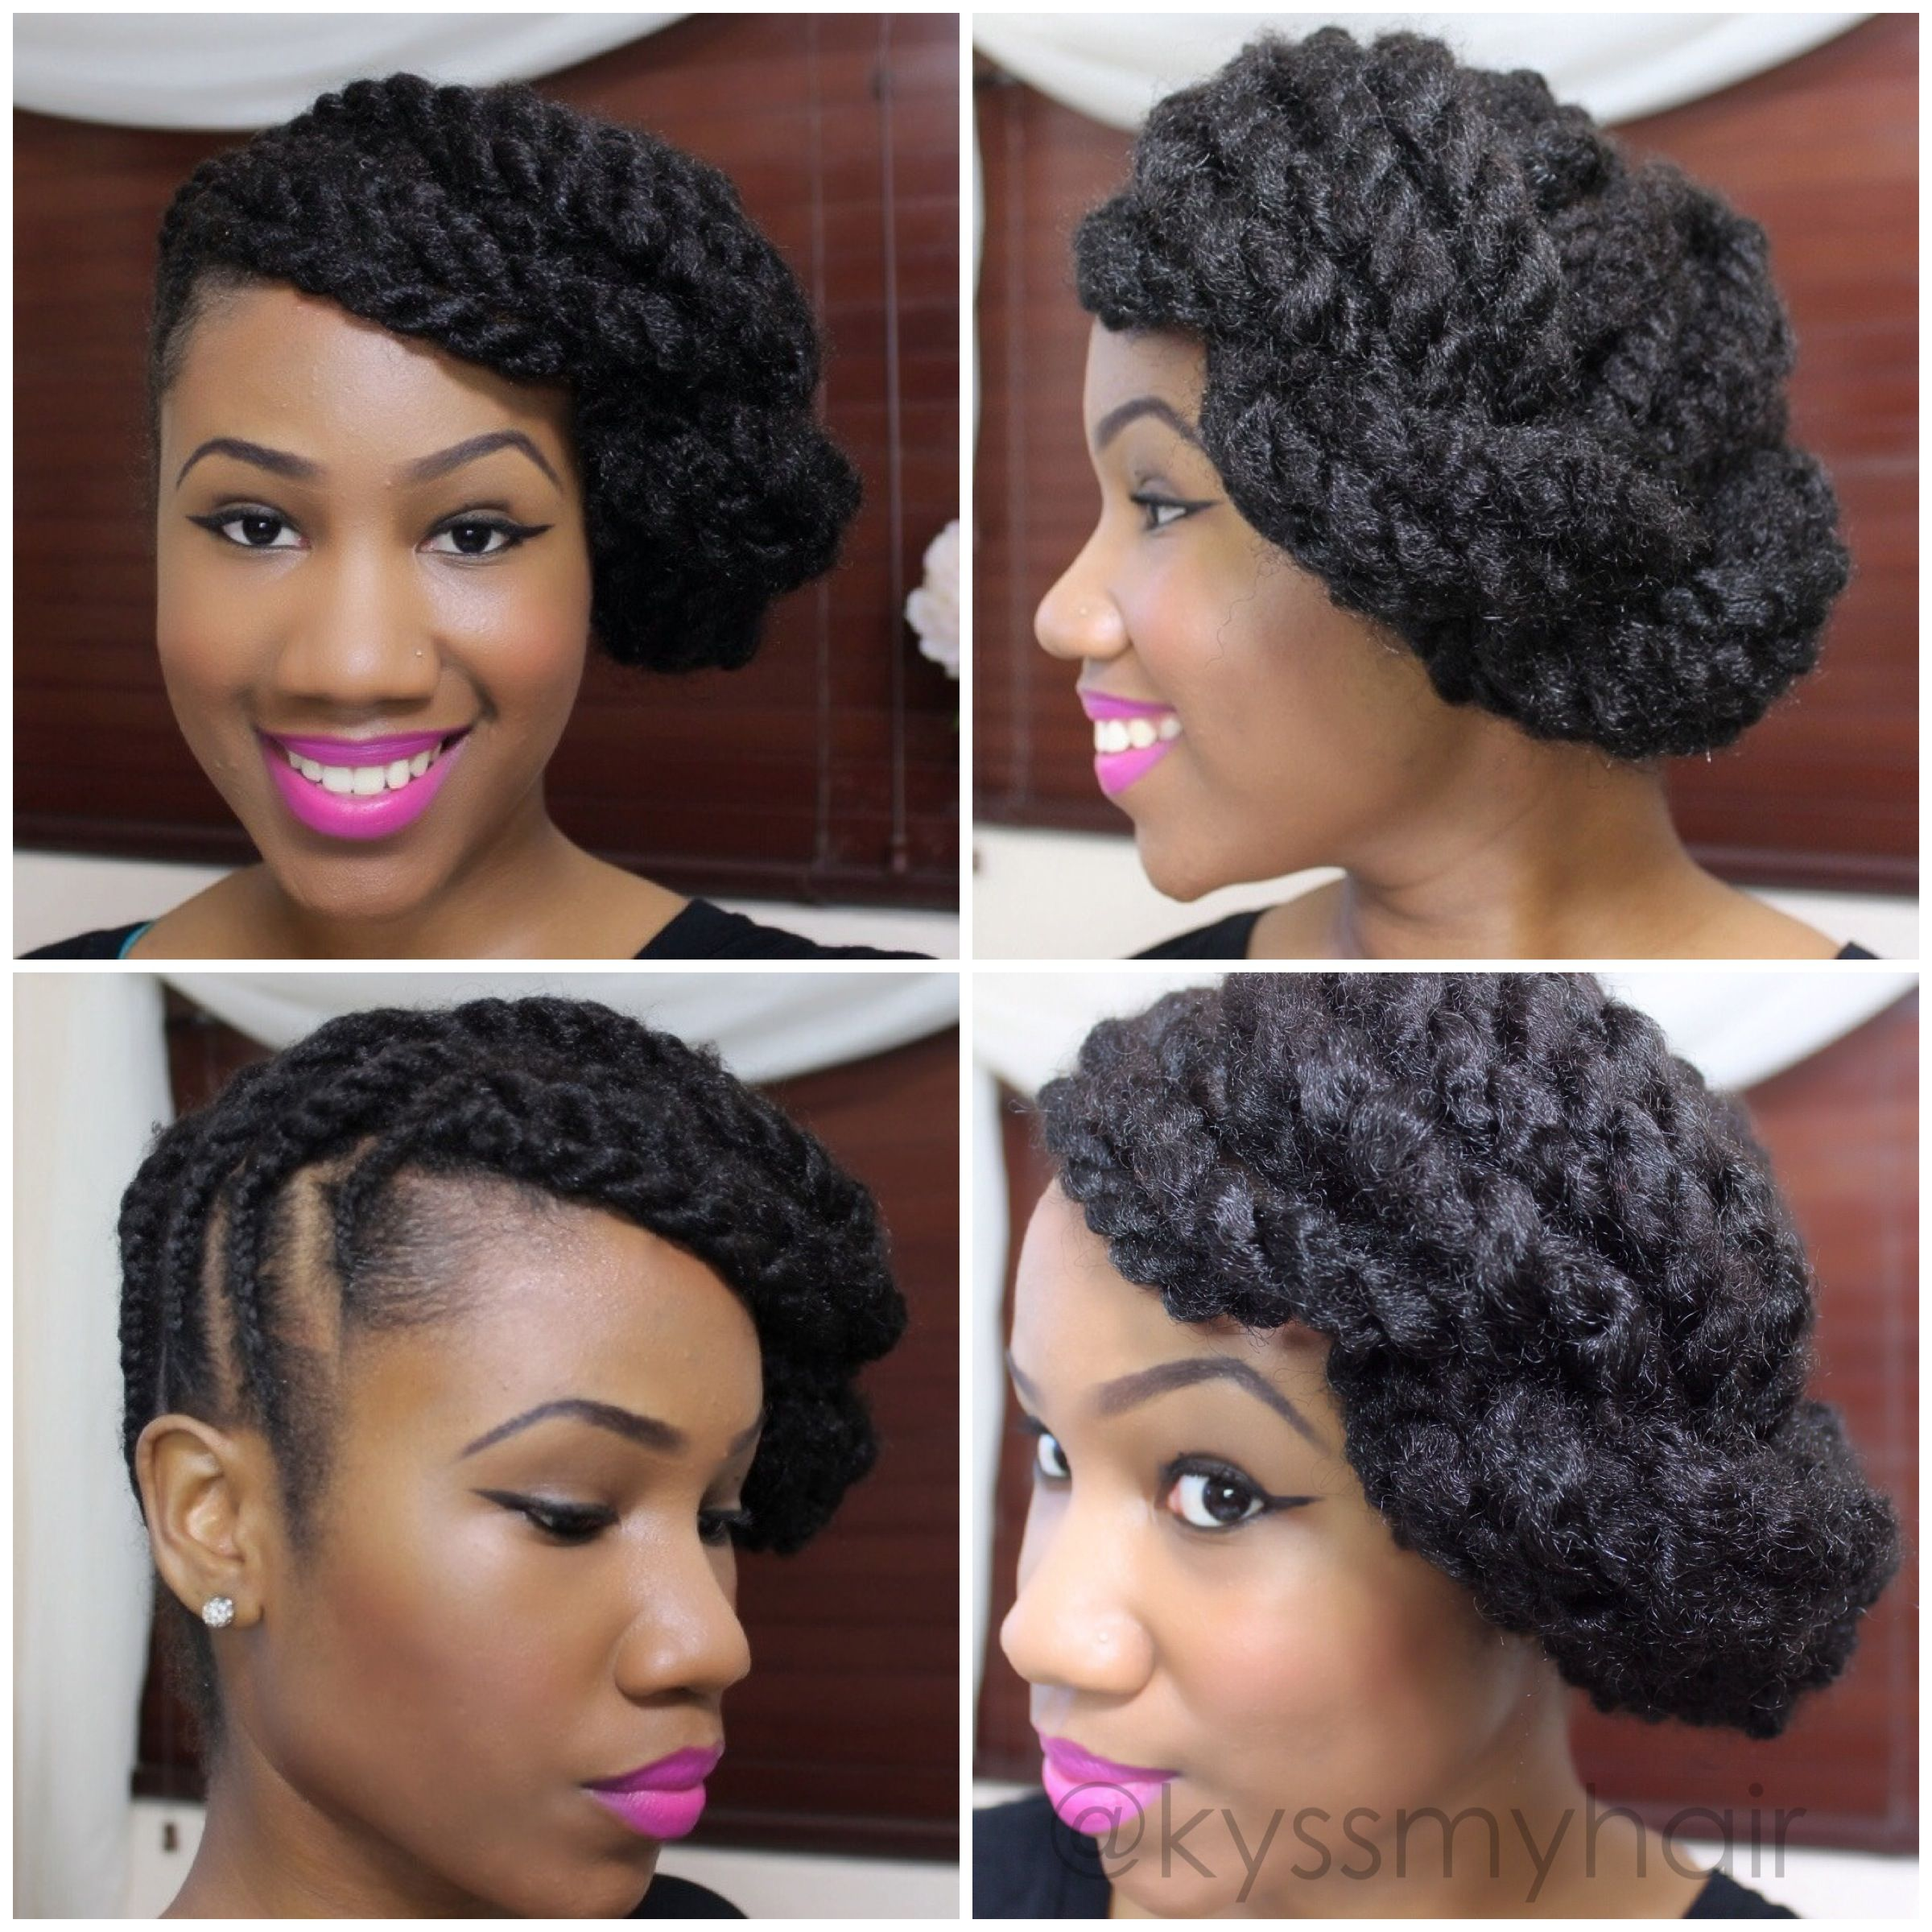 Astonishing 1000 Images About Braids Updos On Pinterest Cornrow Protective Short Hairstyles For Black Women Fulllsitofus